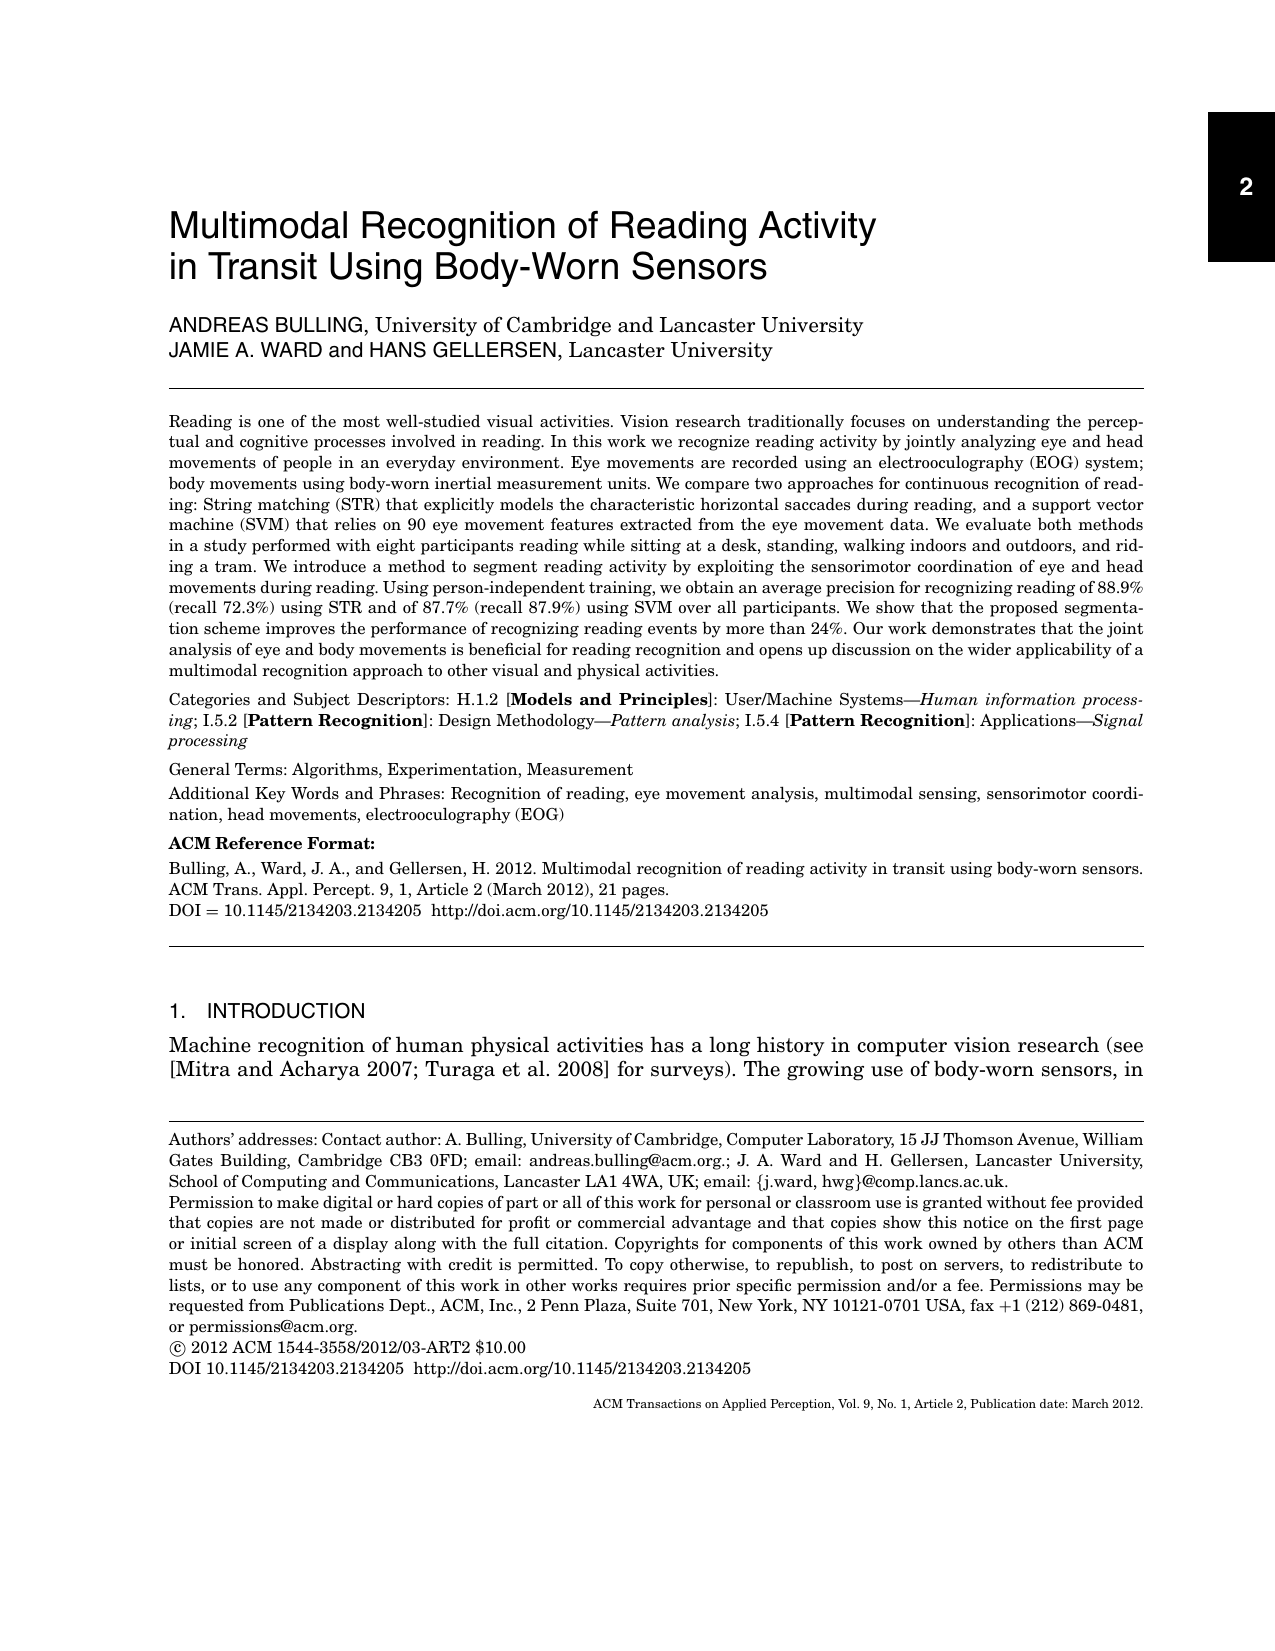 Multimodal Recognition of Reading Activity in Transit Using Body-Worn Sensors